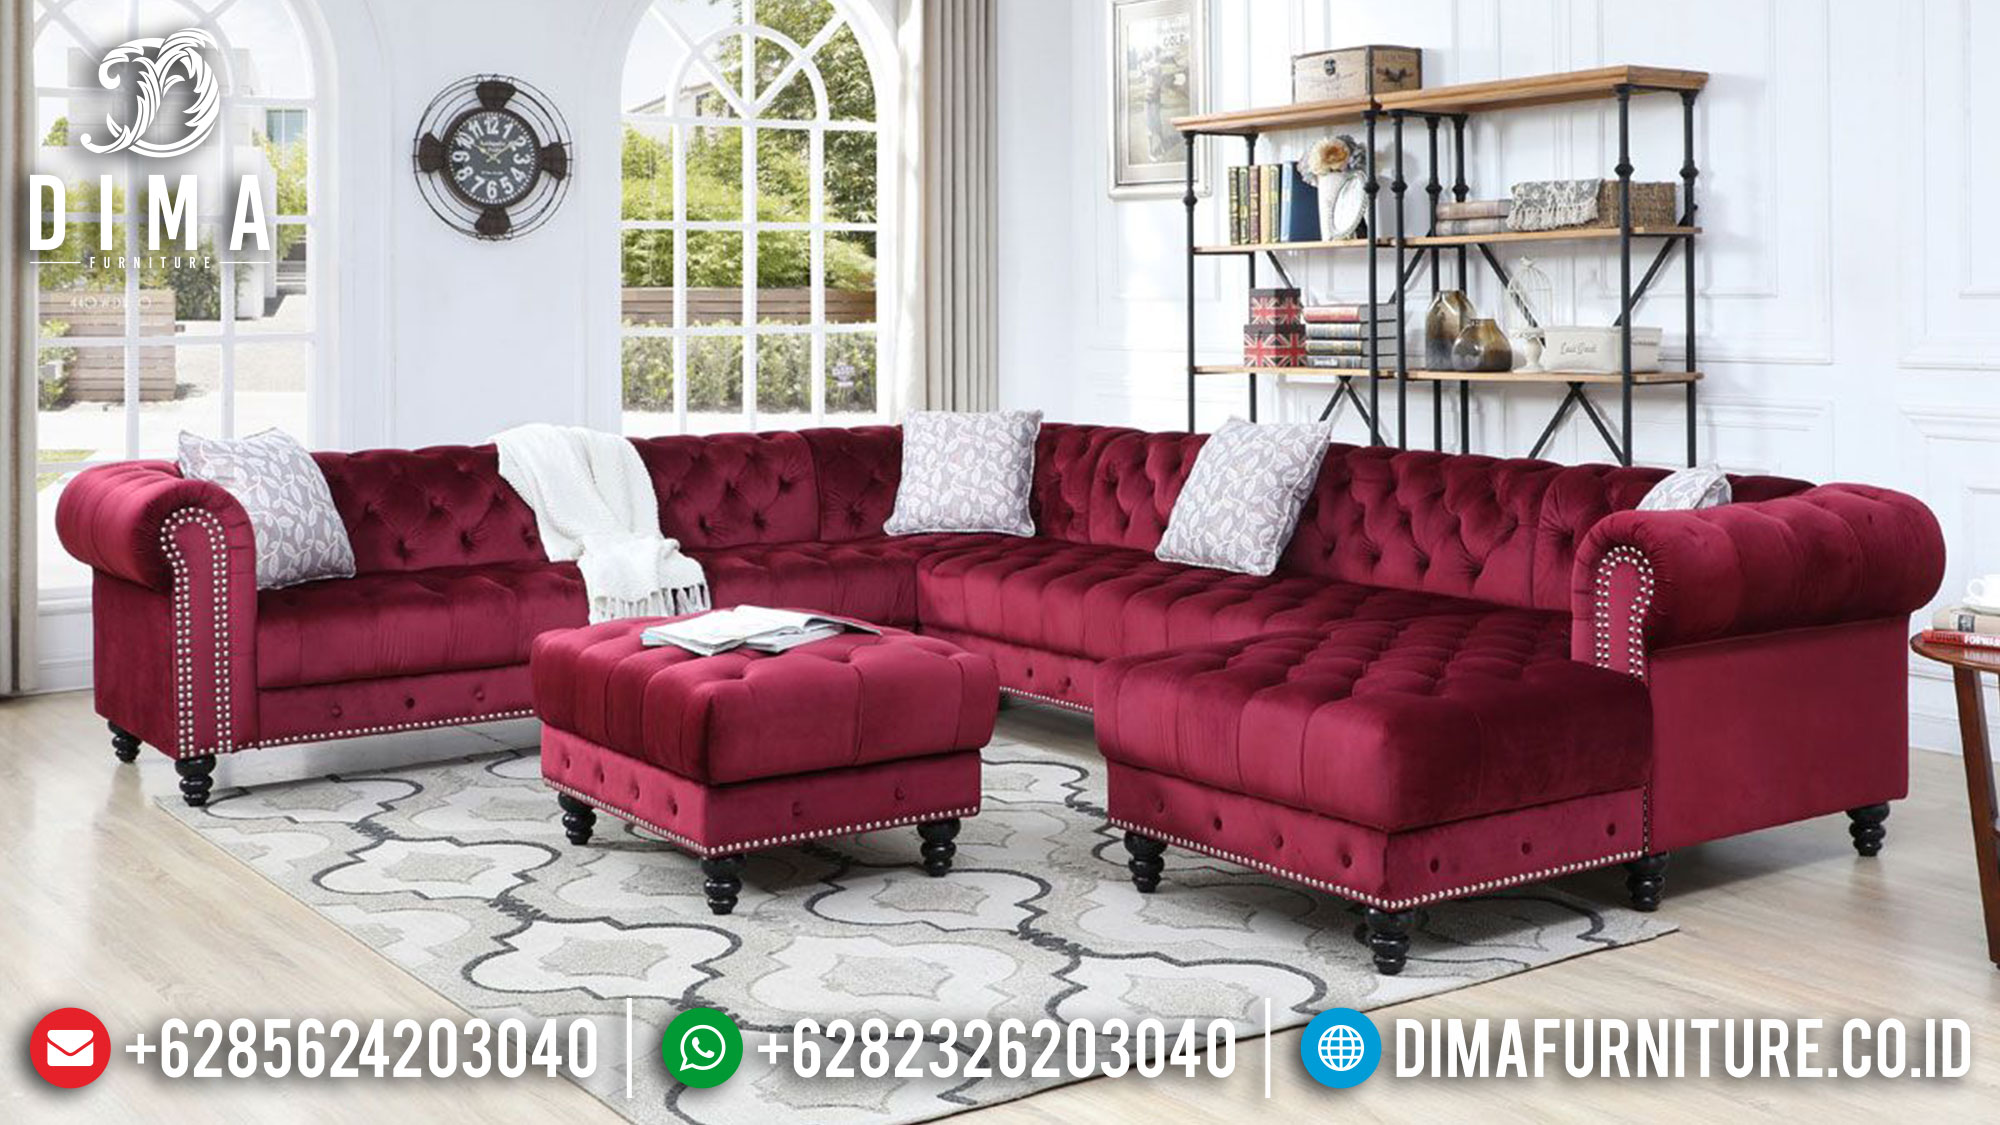 Desain Sofa Tamu Minimalis L, Sofa Tamu Sudut, Sofa Tamu Chester Best Collection Ttj-1481